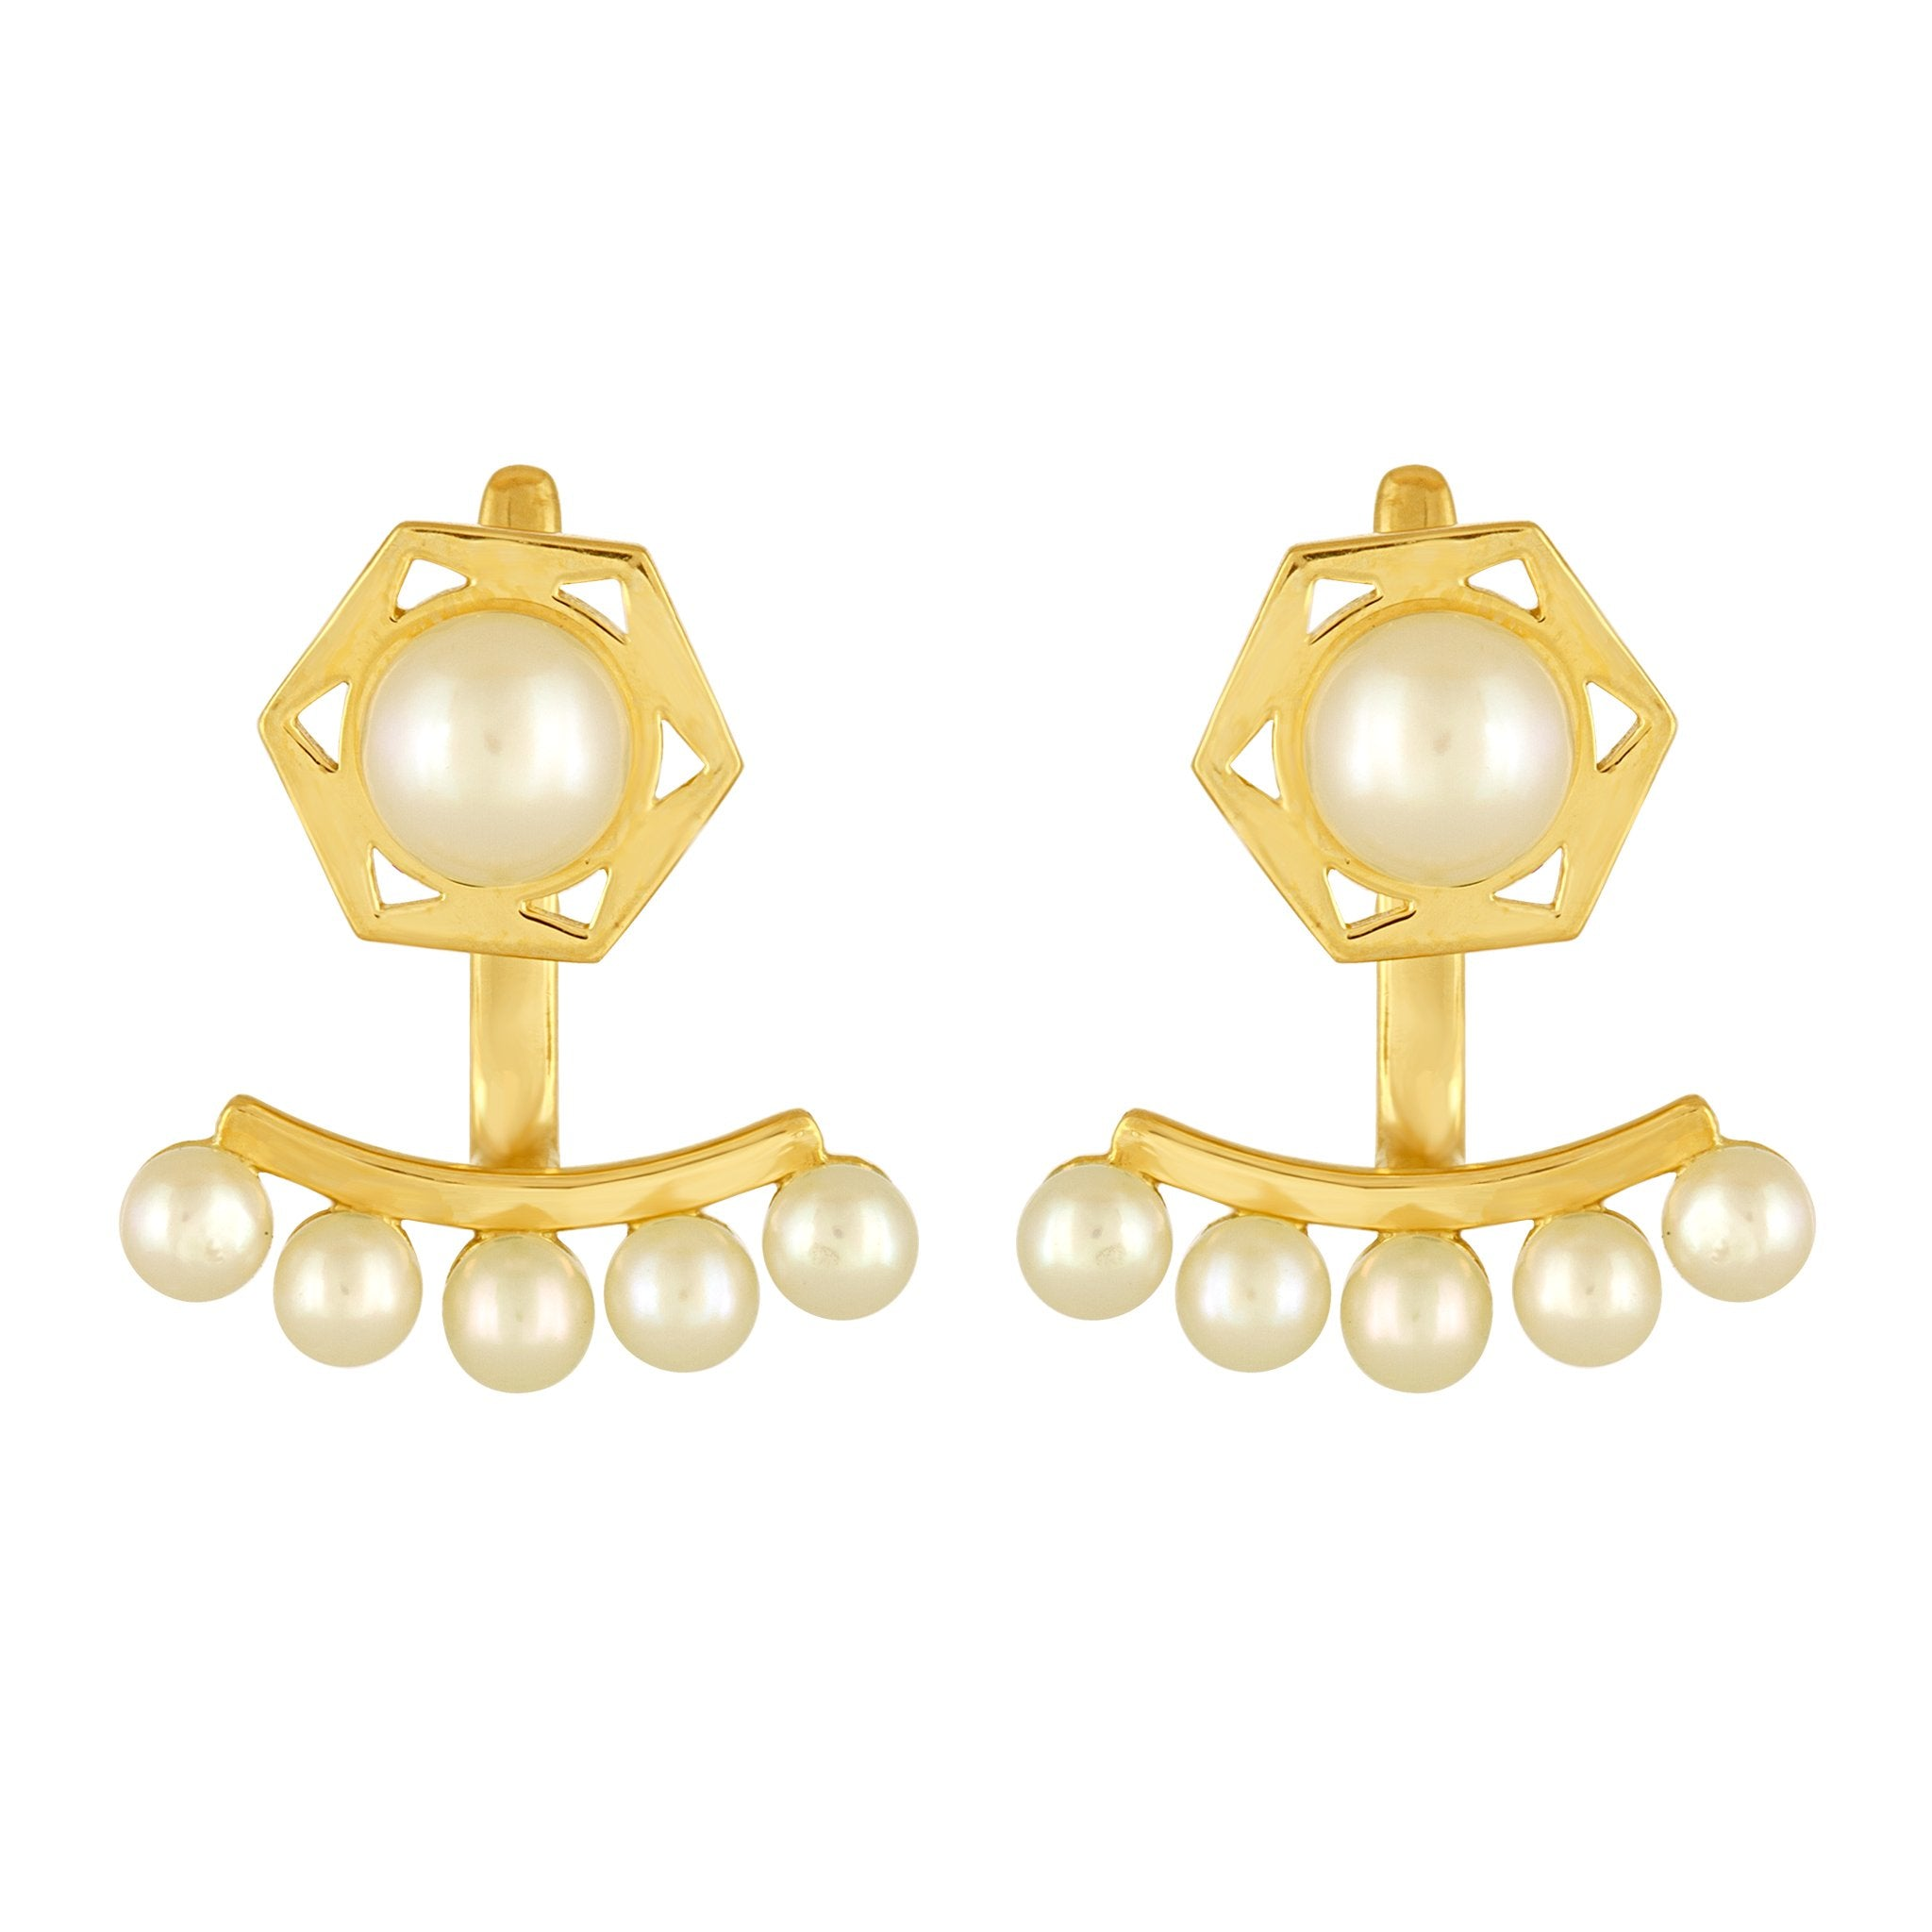 Cosmo Stud Jacket Earrings: 18k Gold, Pearls